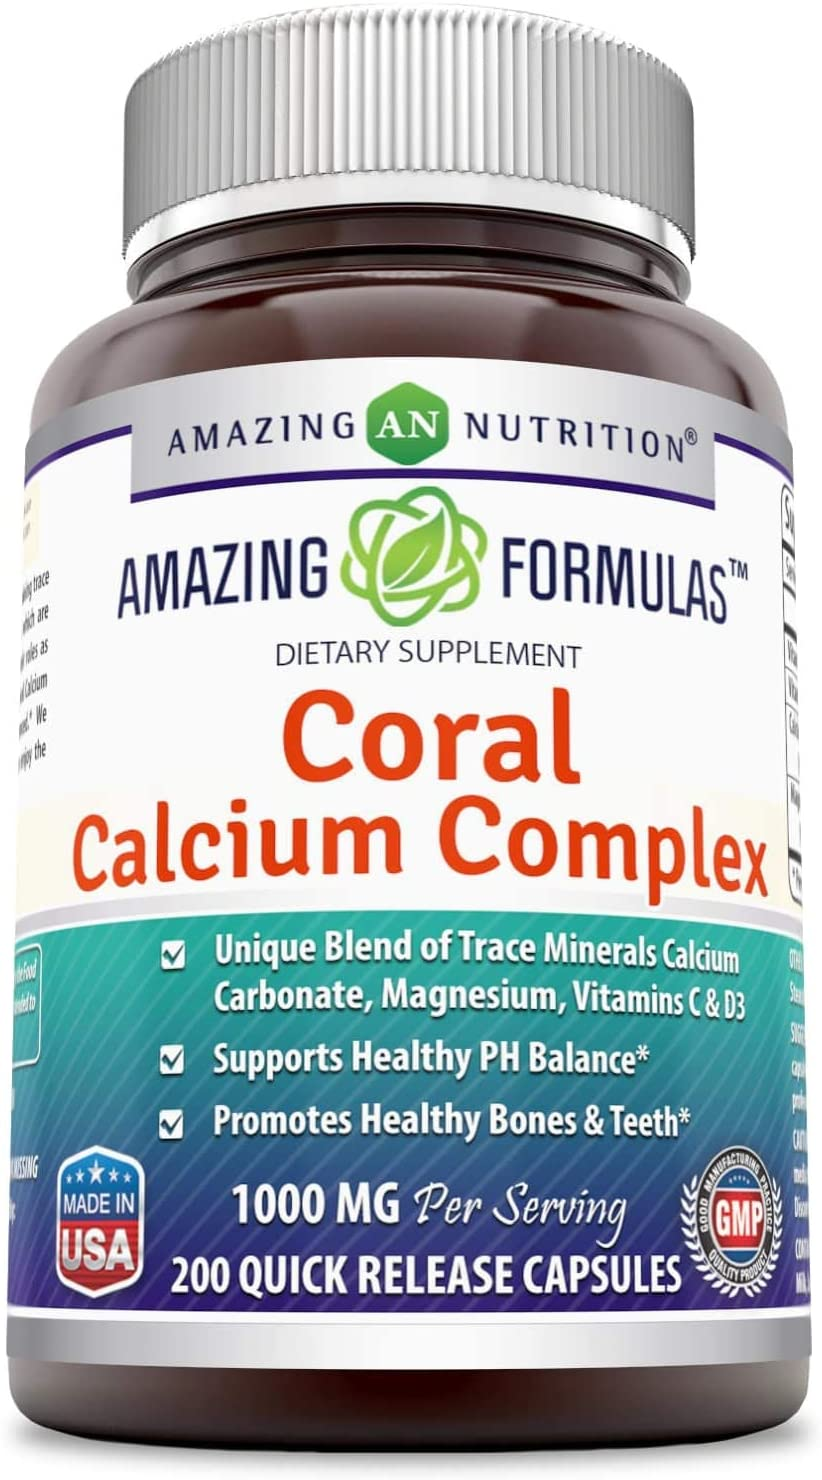 Amazing Nutrition Amazing Formulas Coral Calcium Complex Dietary Supplement - 1000 mg - 200 Quick Release Capsules - Promotes Healthy PH Balance - Supports Healthy Bones and Teet